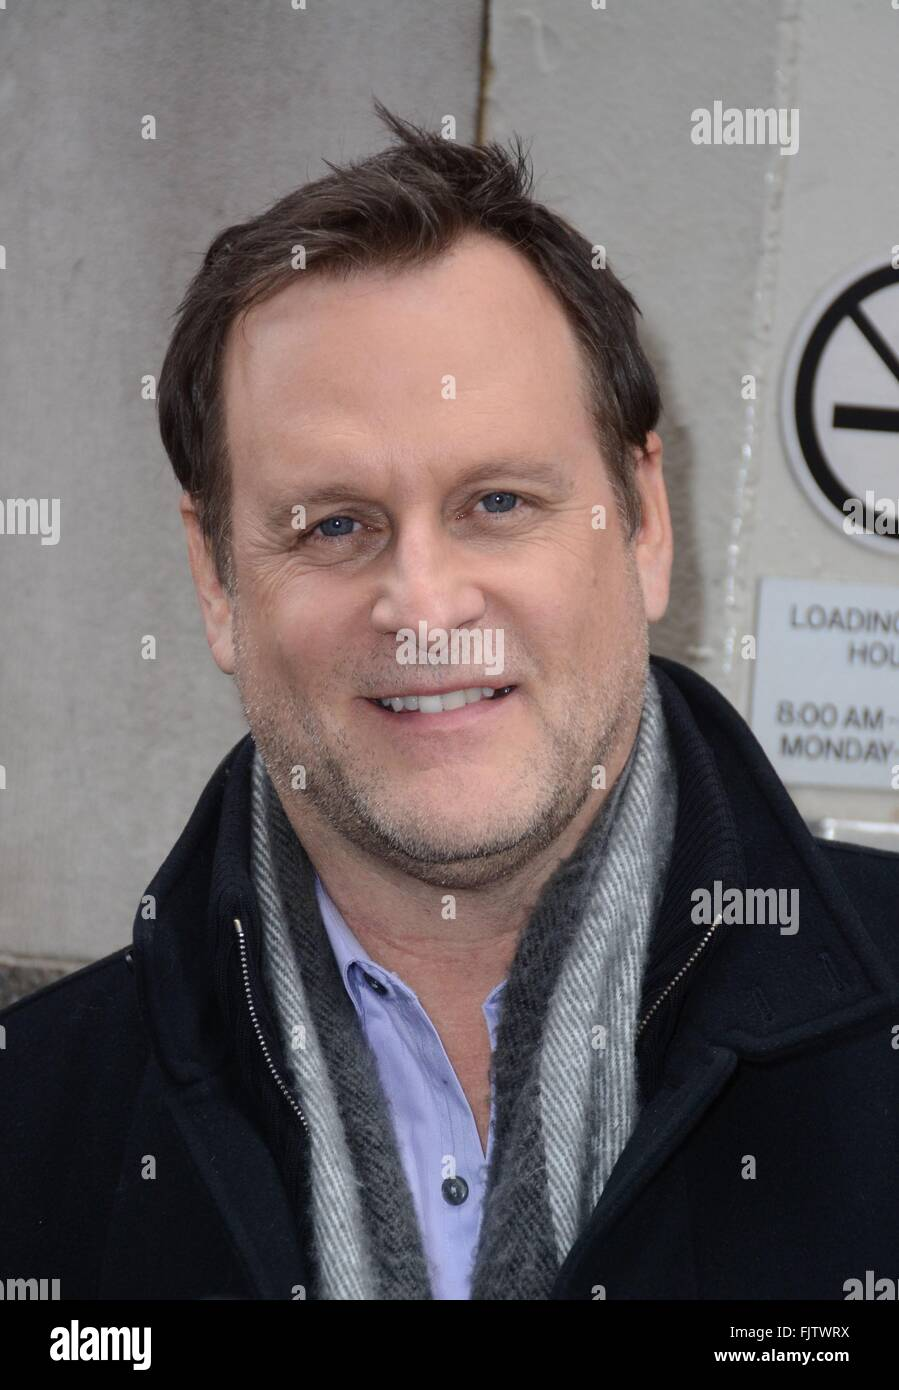 dave coulier stock photos dave coulier stock images alamy